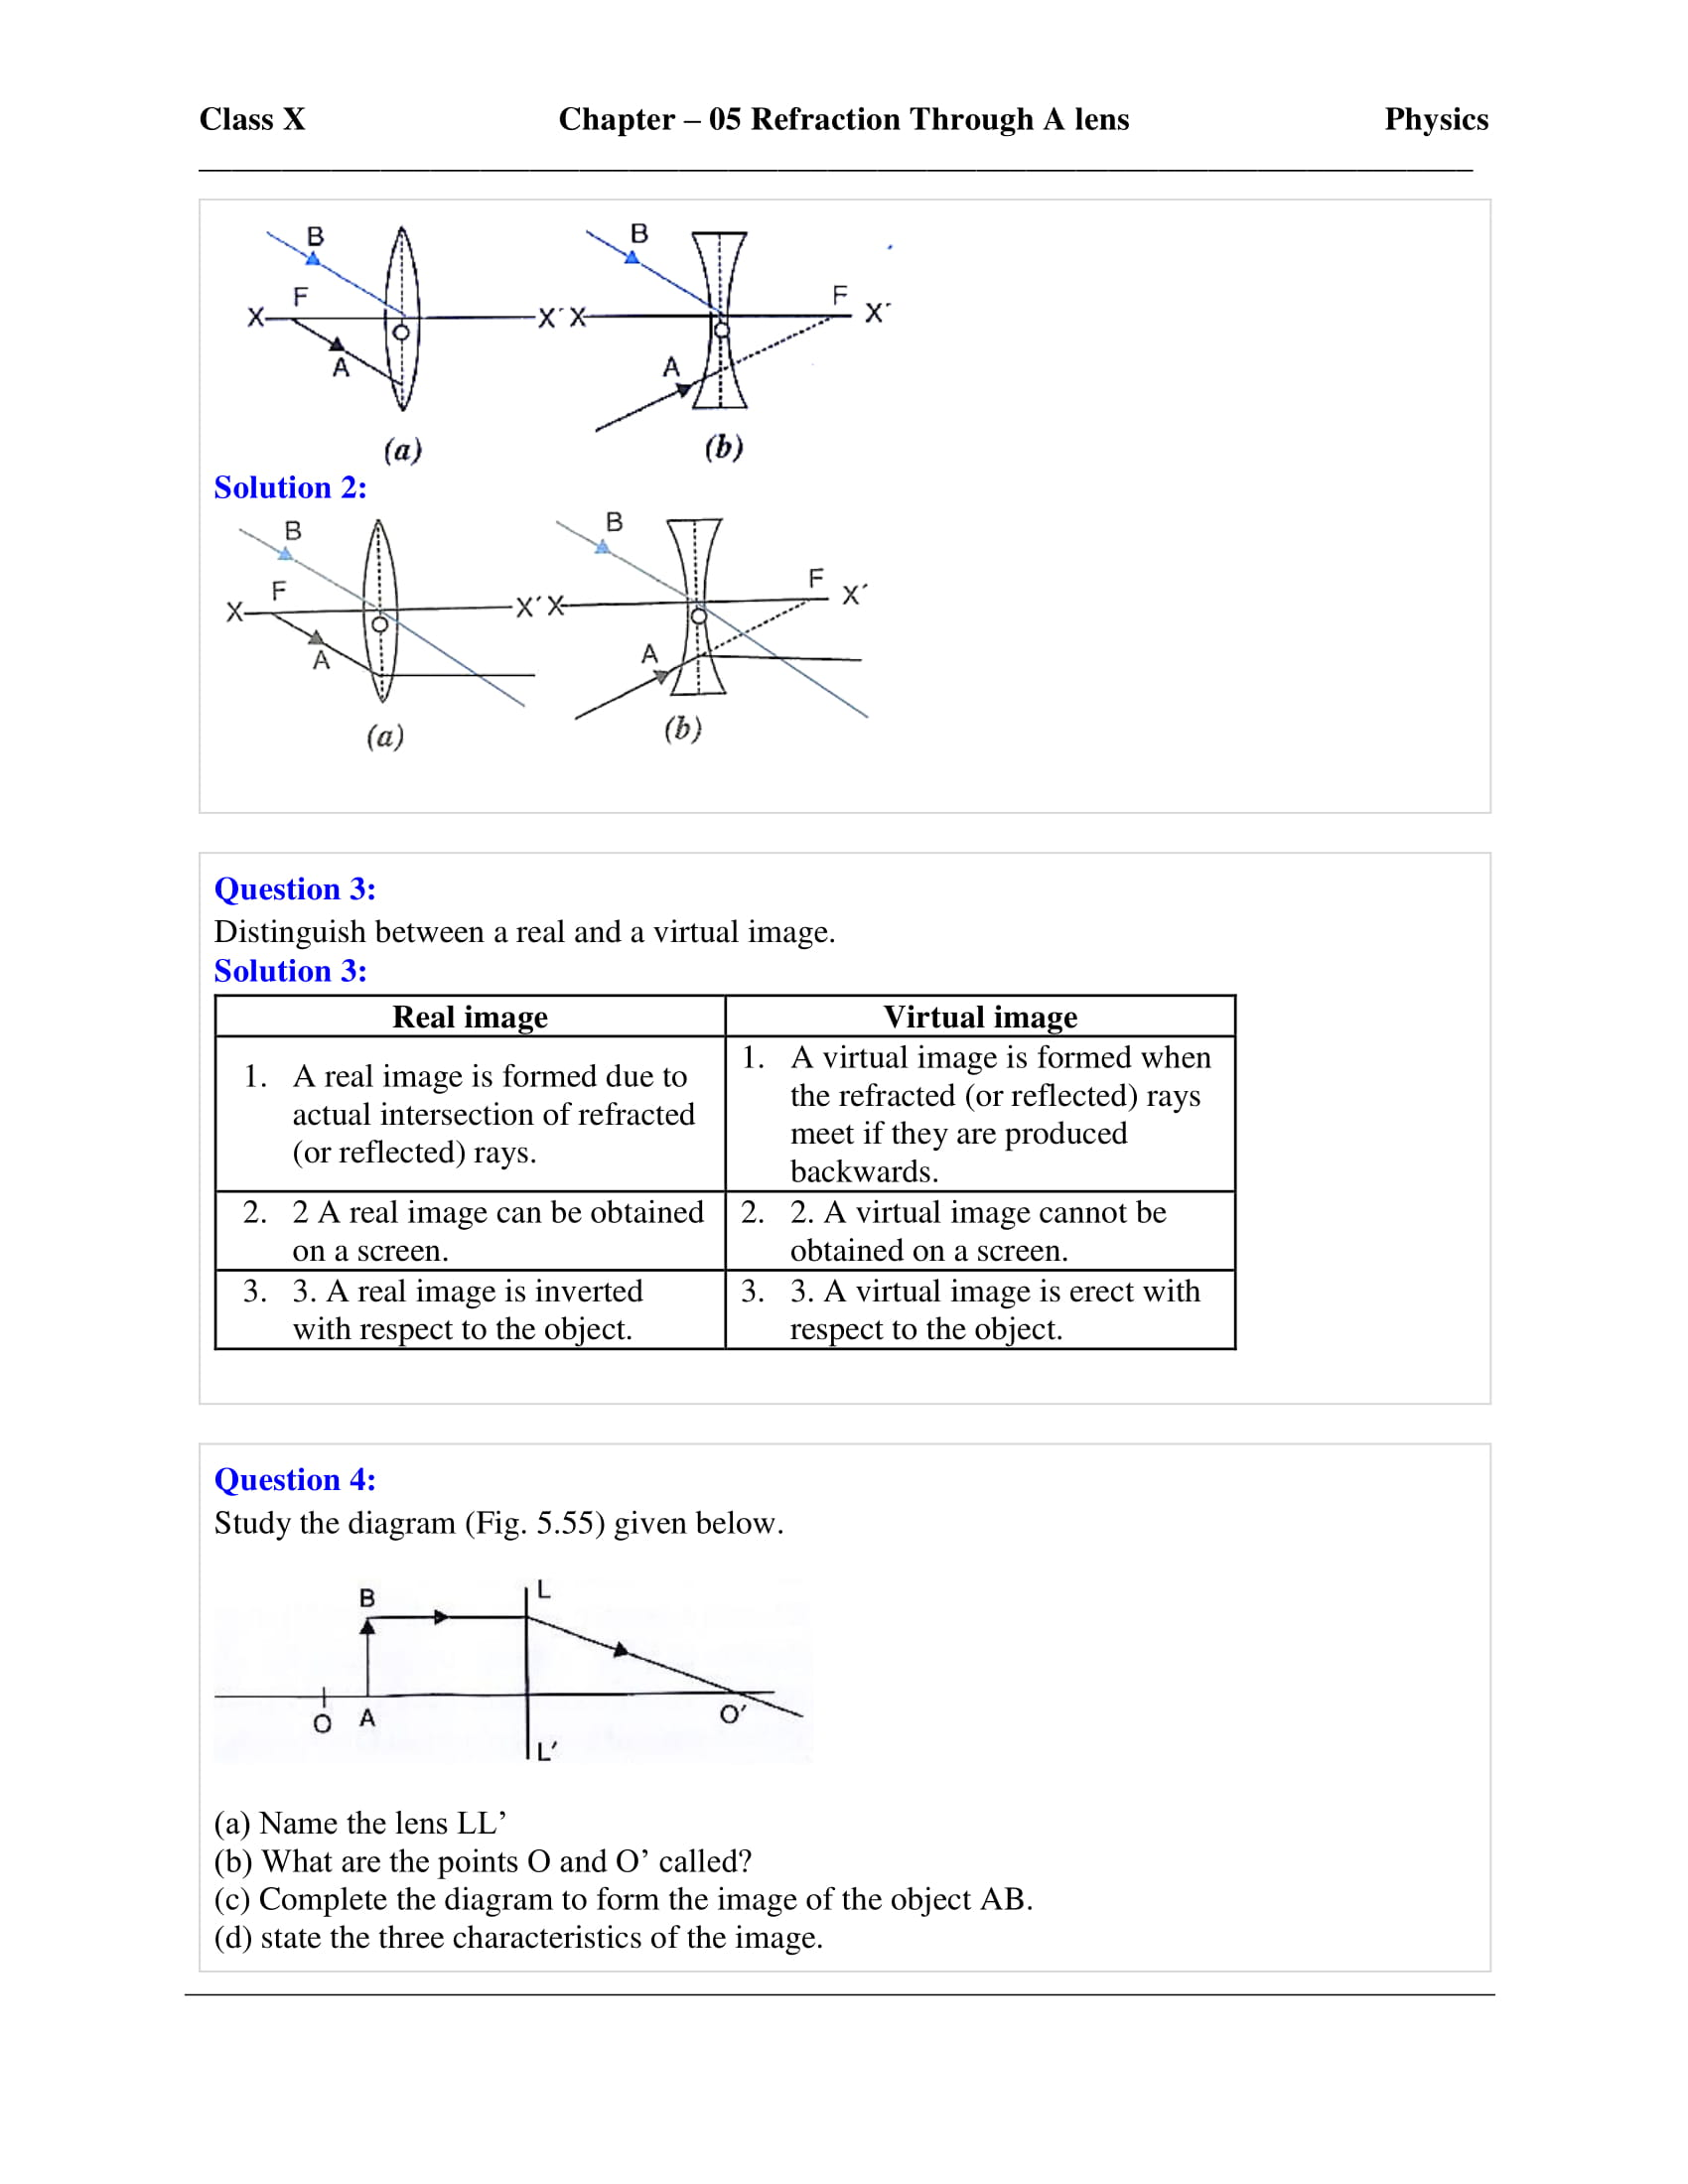 icse-selina-physics-solutions-class-10-chapter-5-refraction-through-a-lens-16